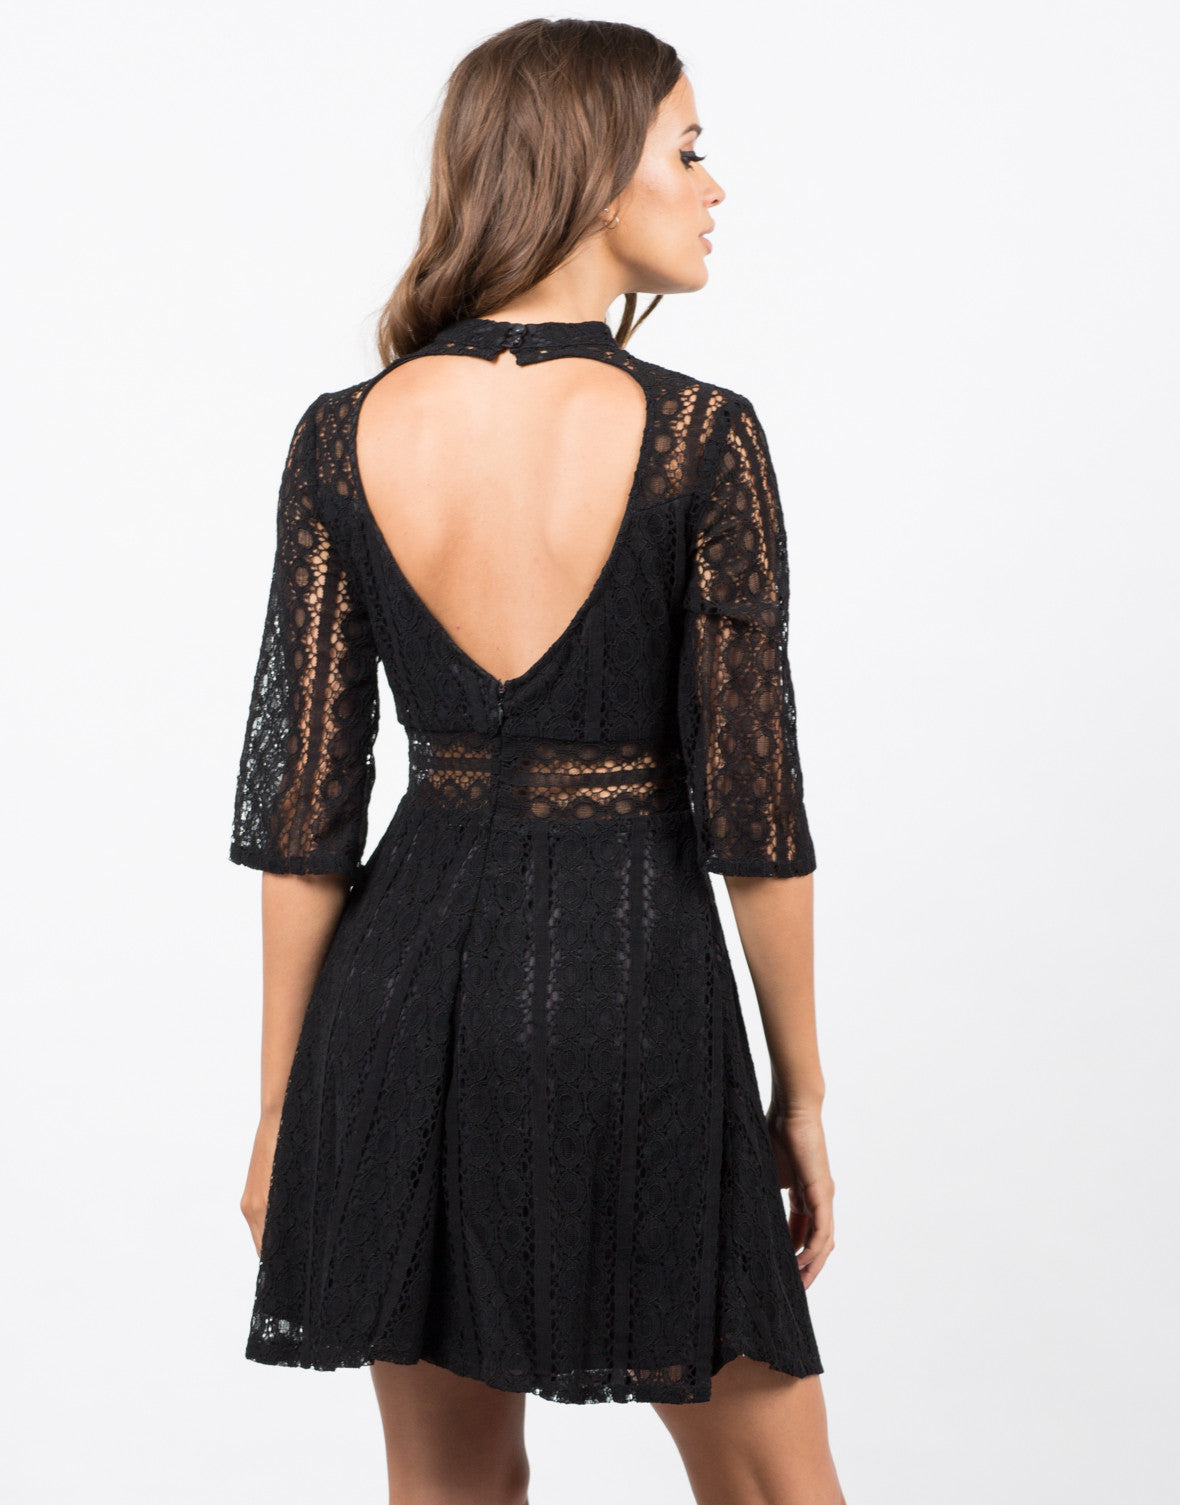 Back View of Victorian Lace Dress